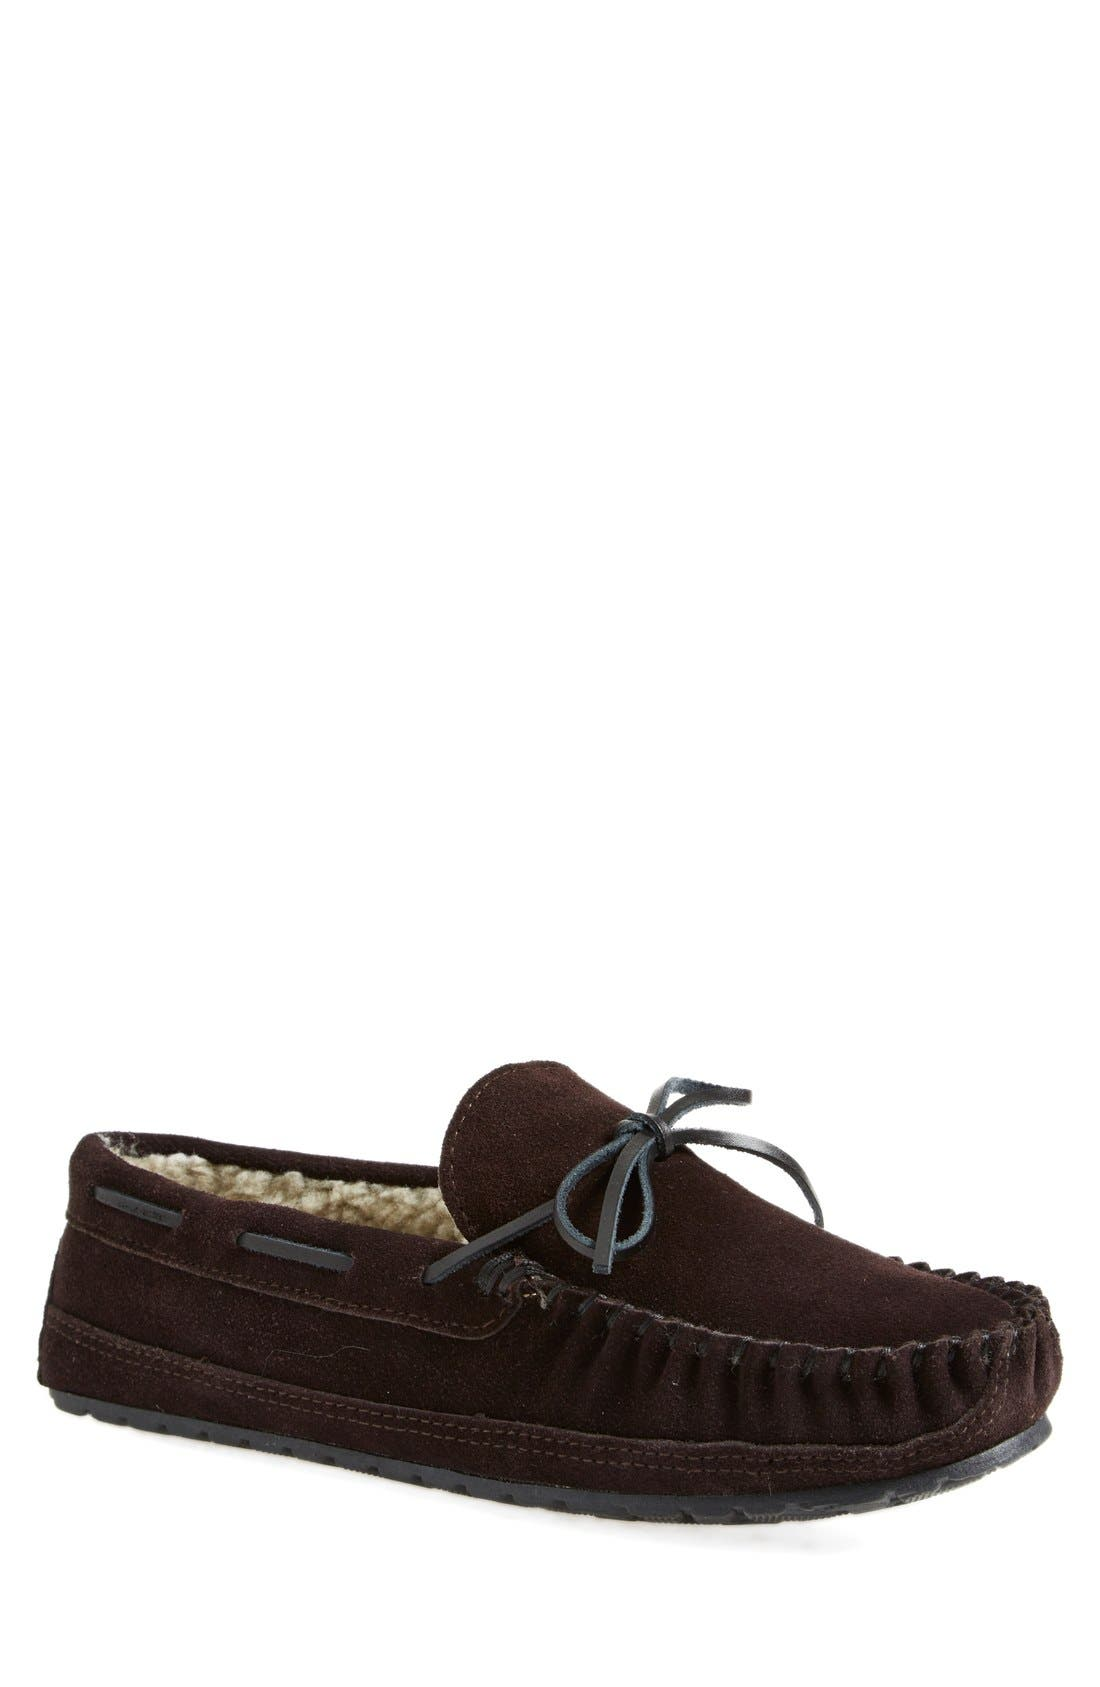 'Potomac' Moccasin Slipper,                             Main thumbnail 1, color,                             220